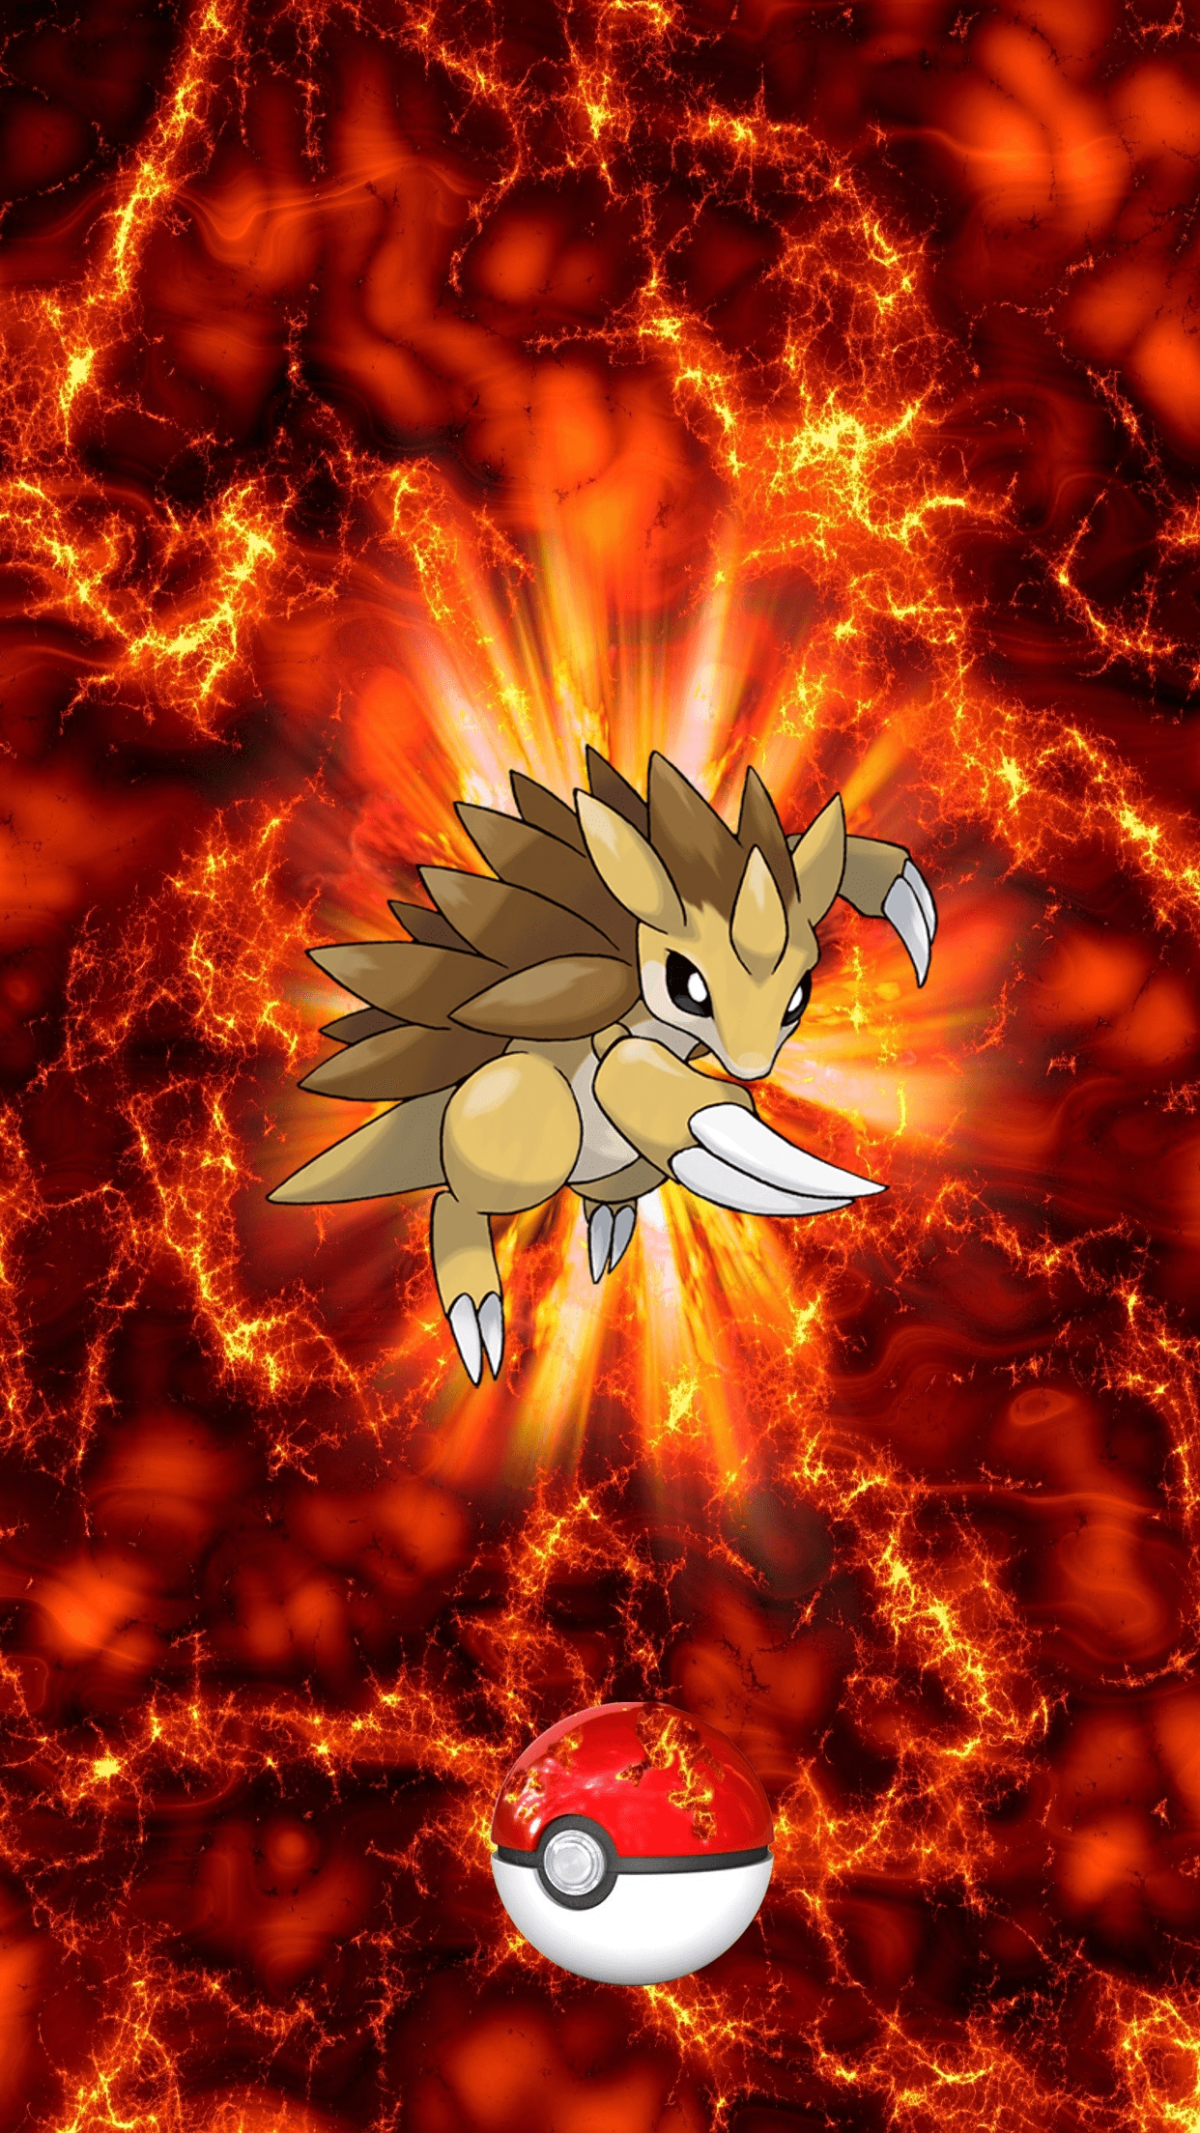 028 Fire Pokeball Sandslash Sandpan Sandshrew | Wallpaper